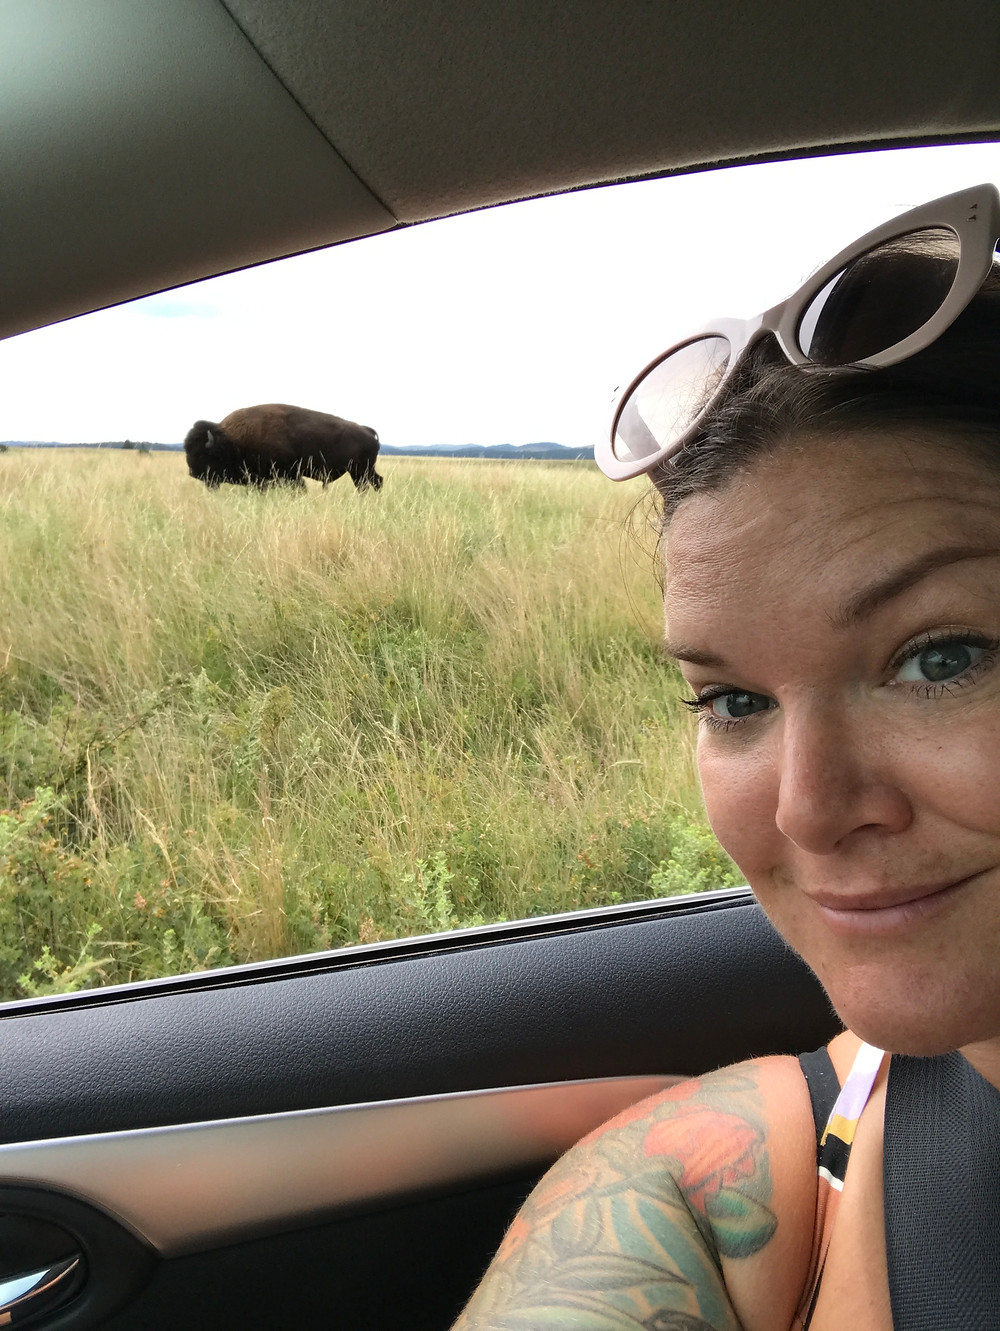 We saw hundreds of wild bison. Including a Momma, baby and Dad that walked across the road right in front of us.